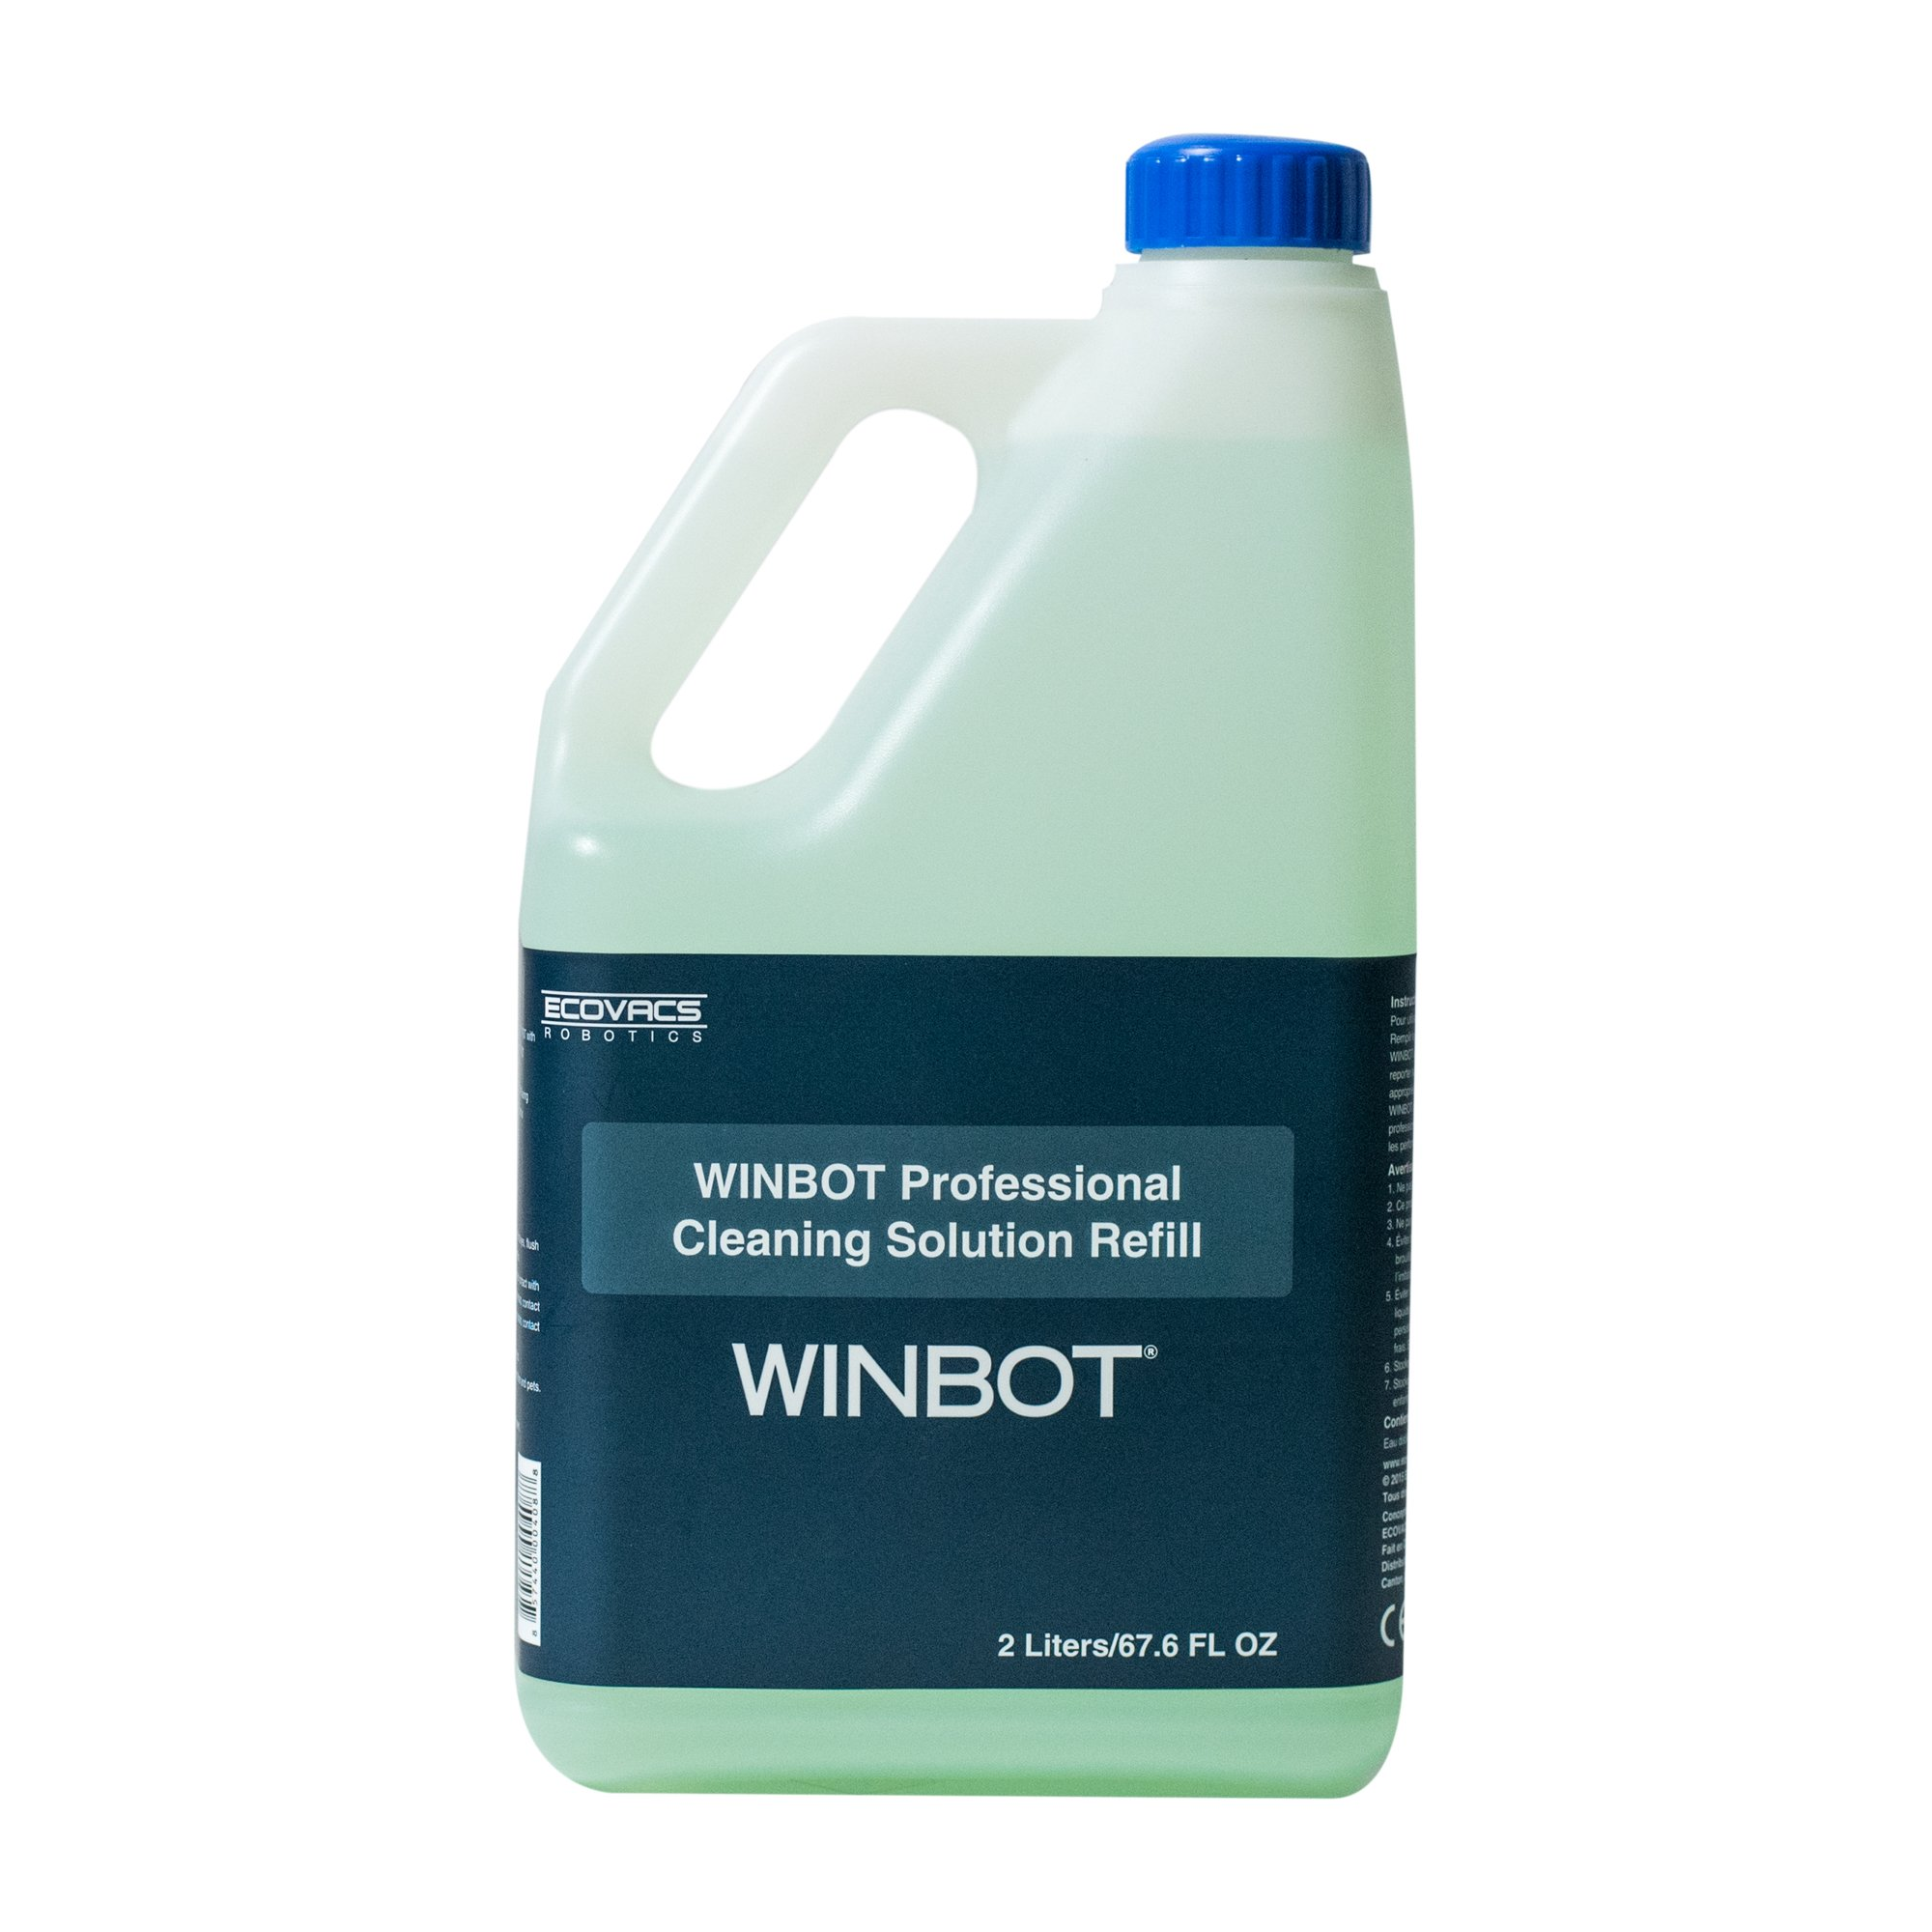 WINBOT Professional Cleaning Solution Refill, Half Gallon